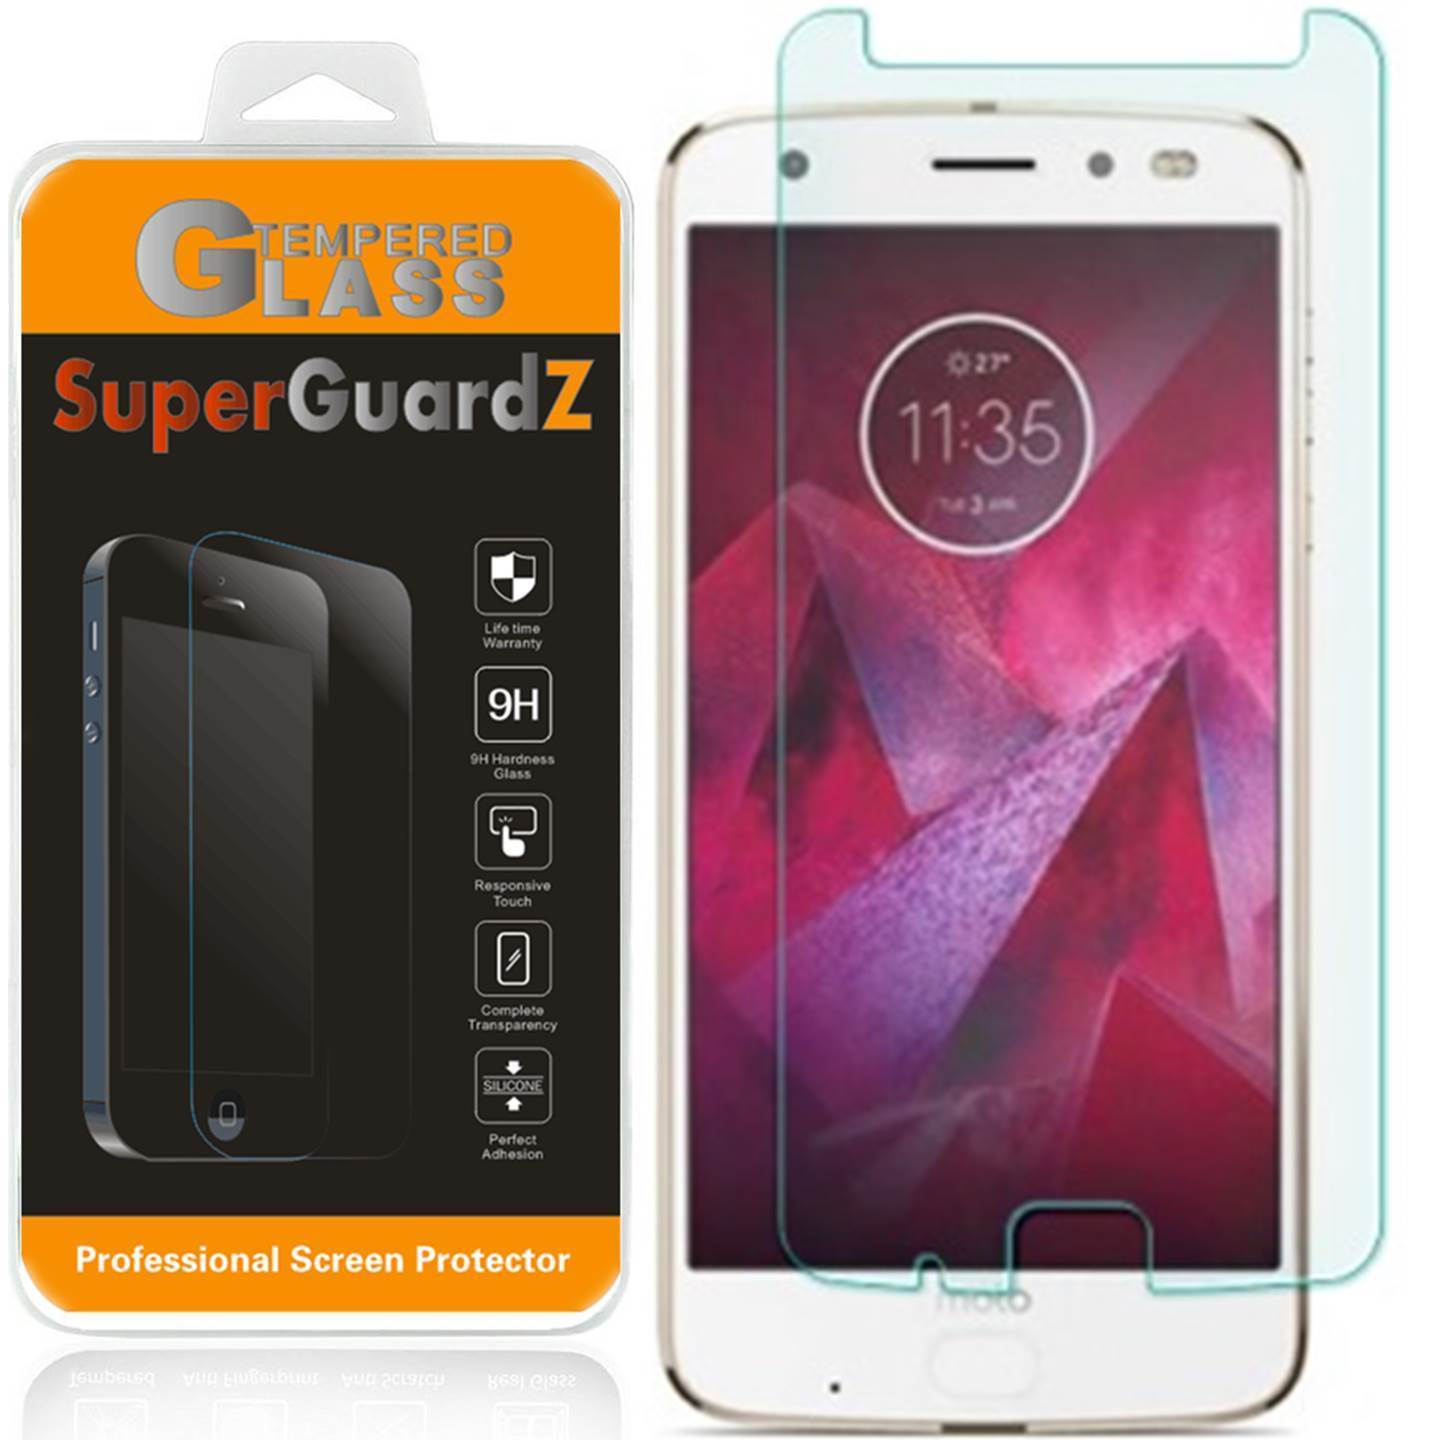 [3-Pack] For Motorola Moto Z2 Force Edition - SuperGuardZ Tempered Glass Screen Protector, 9H, Anti-Scratch, Anti-Bubble, Anti-Fingerprint